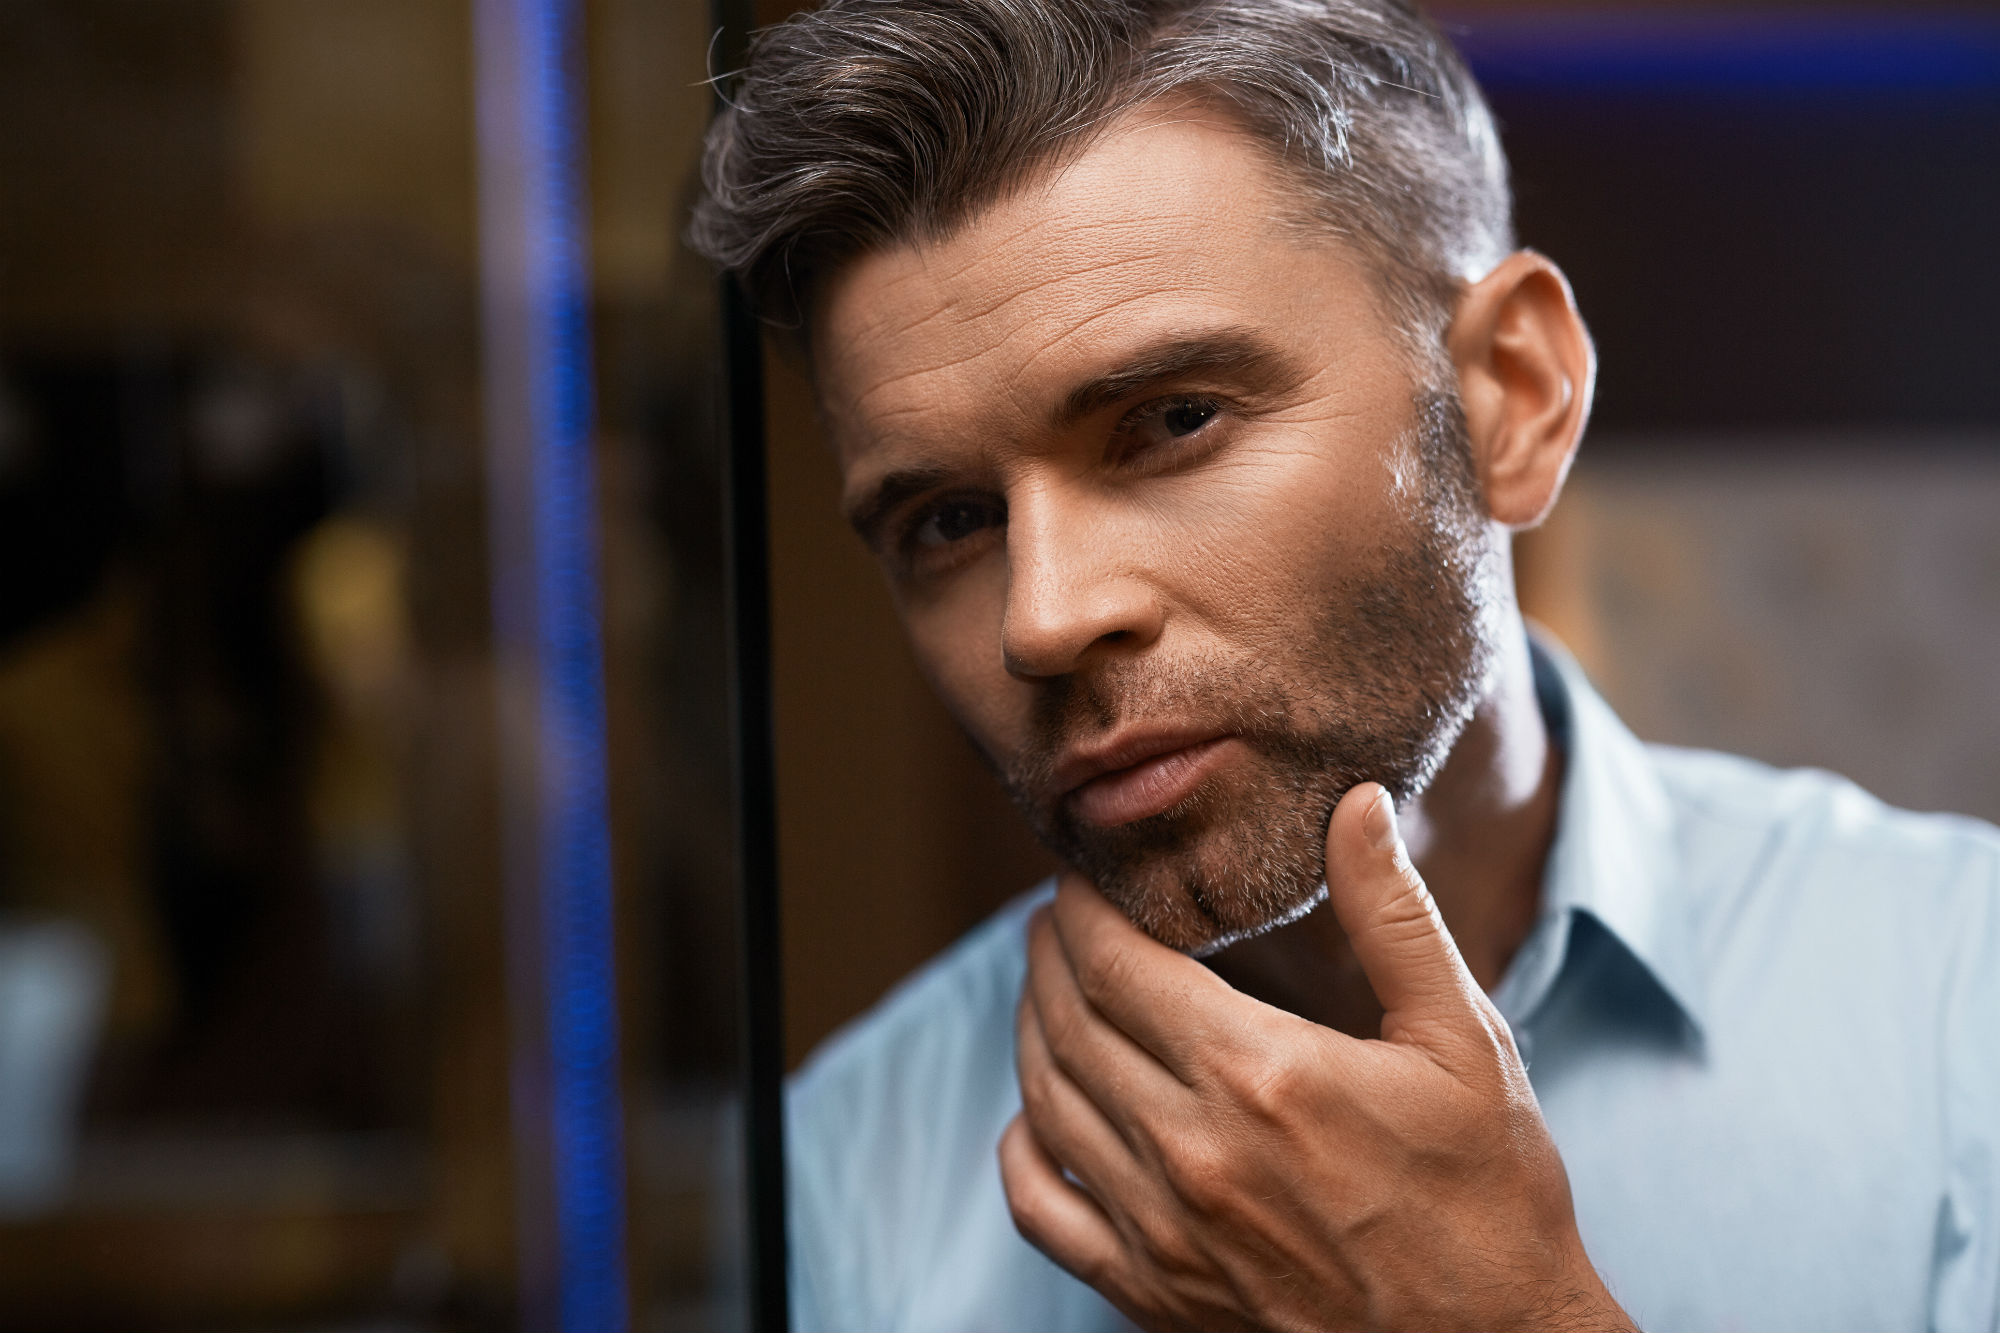 For Men: Grooming Tips to Make You Look Your Best